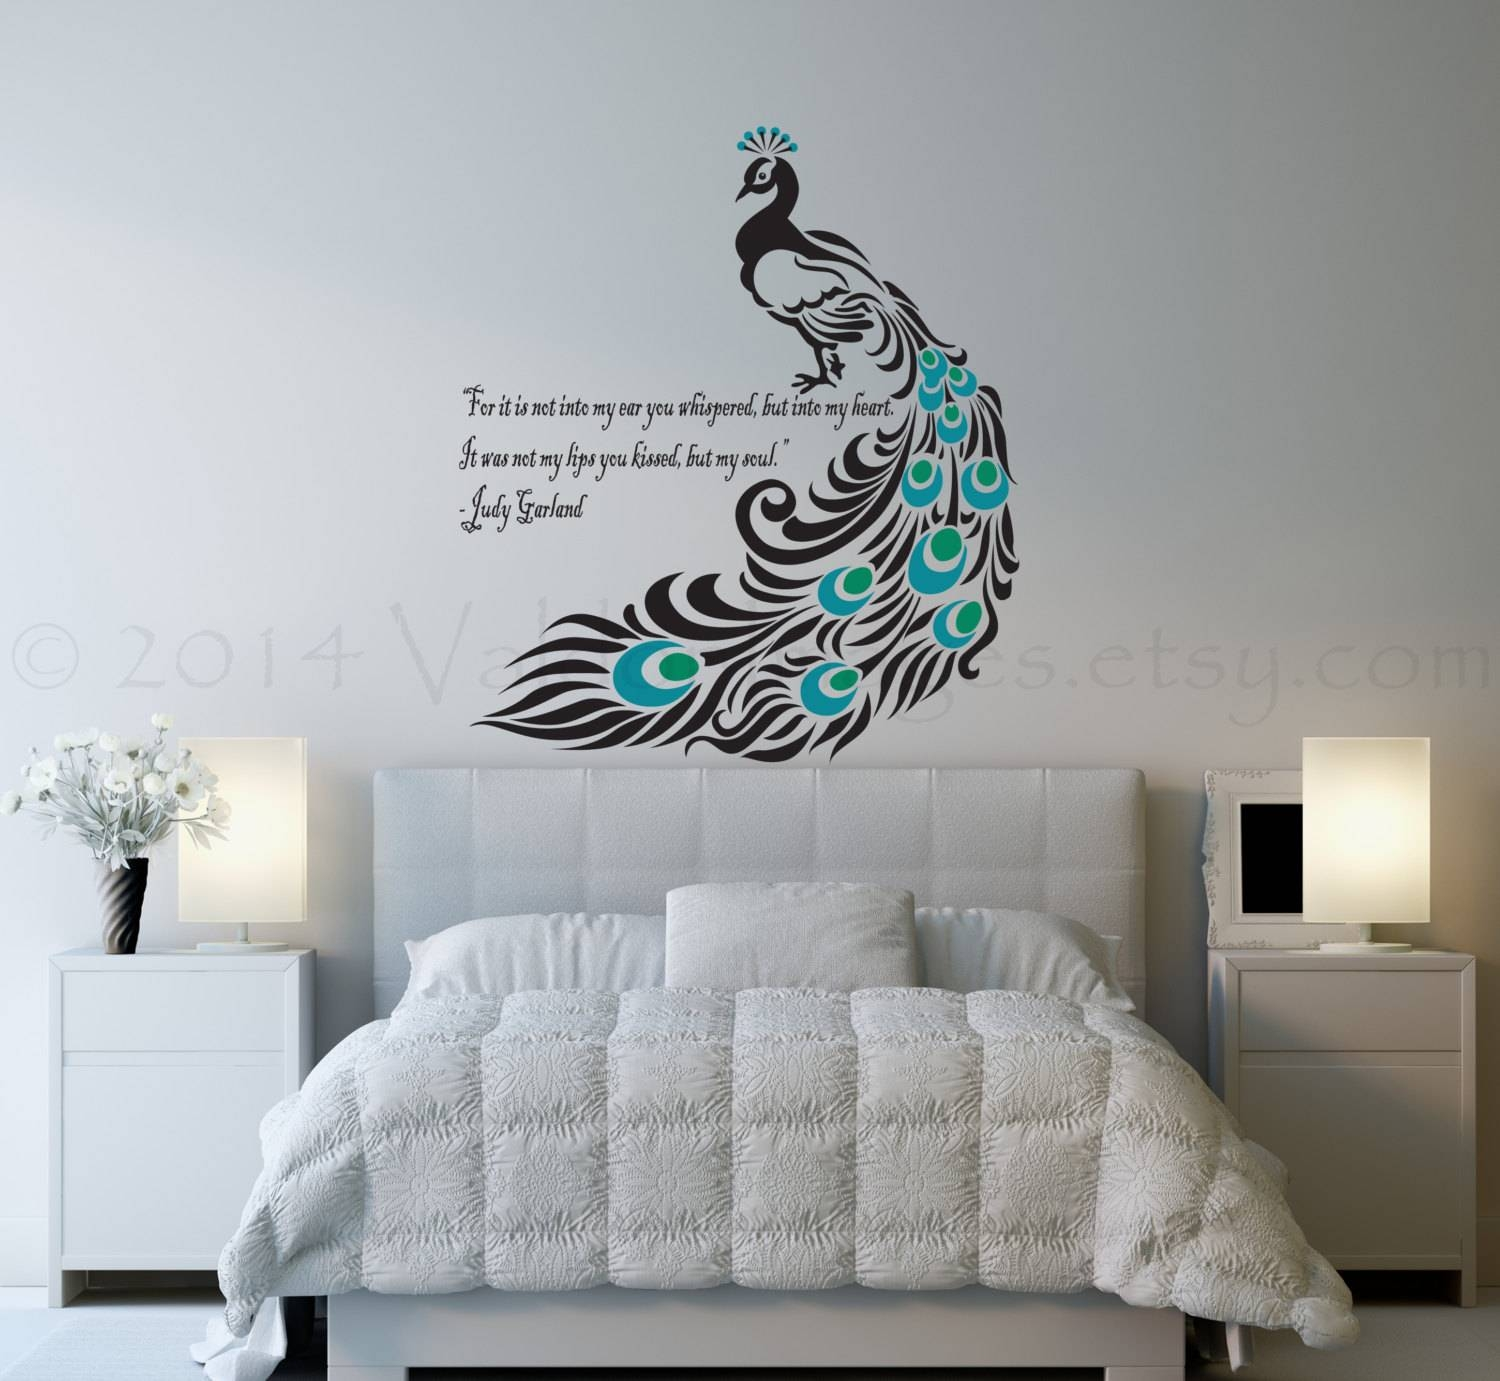 Bedroom : Superb 3D Wall Art Stickers Wall Stickers For Bedrooms With Regard To Current 3D Wall Art For Bedrooms (View 11 of 20)